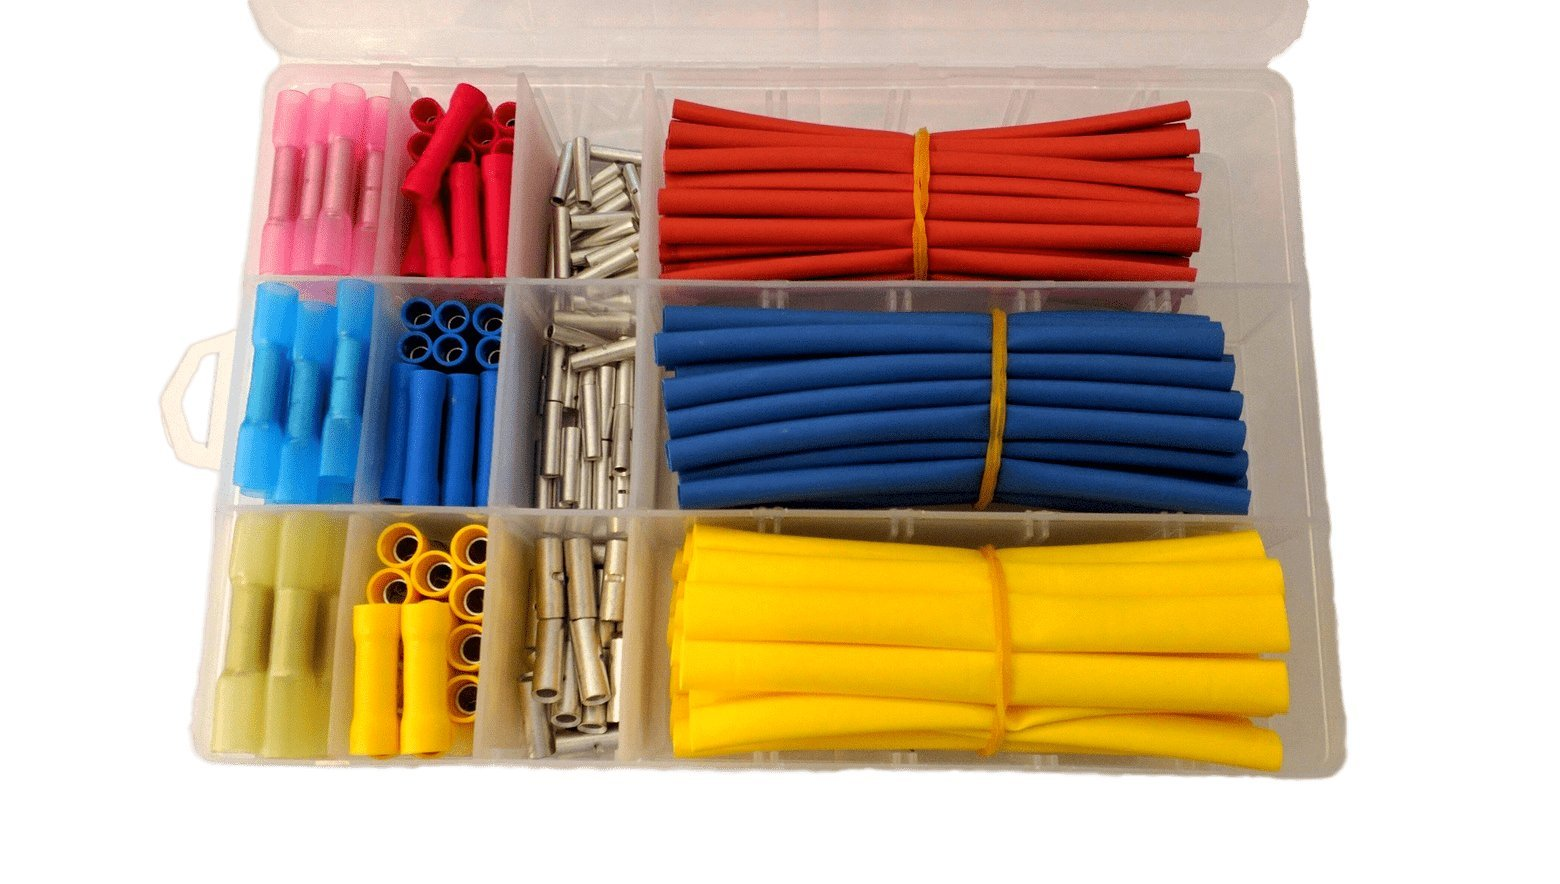 Butt Connector and Heat Shrink Tubing Kit, 270Pcs with Case. Best for Electrical, Marine and Automotive Wire. 165 Butt Connectors and 105Pcs Heat Shrink Tubing